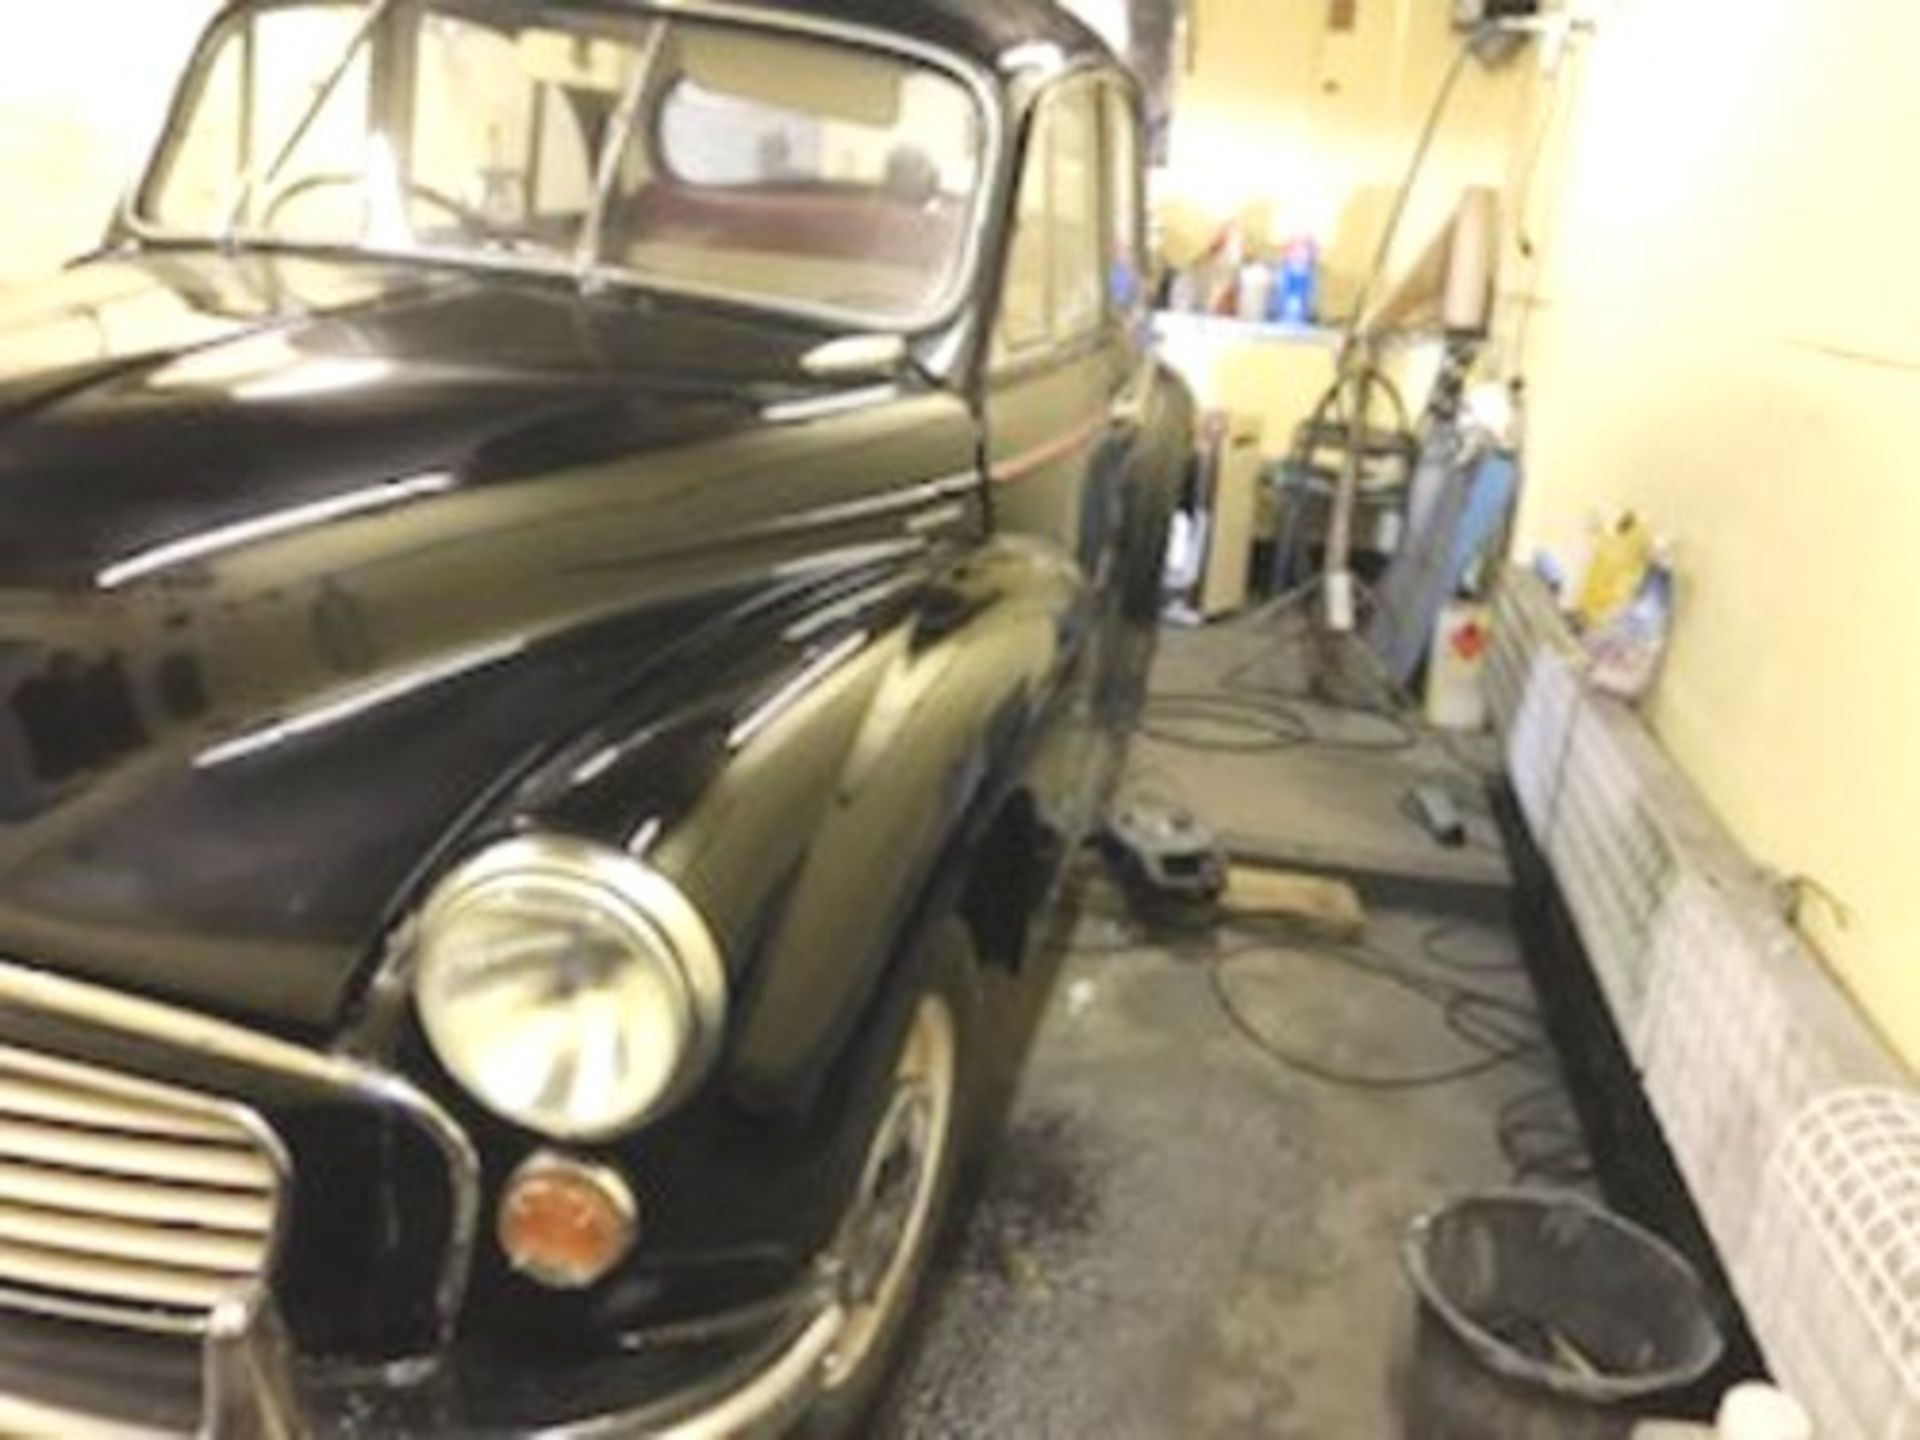 1964 Morris Minor 1000 in original black. The car has been restored with new flooring and vinyl - Image 3 of 16